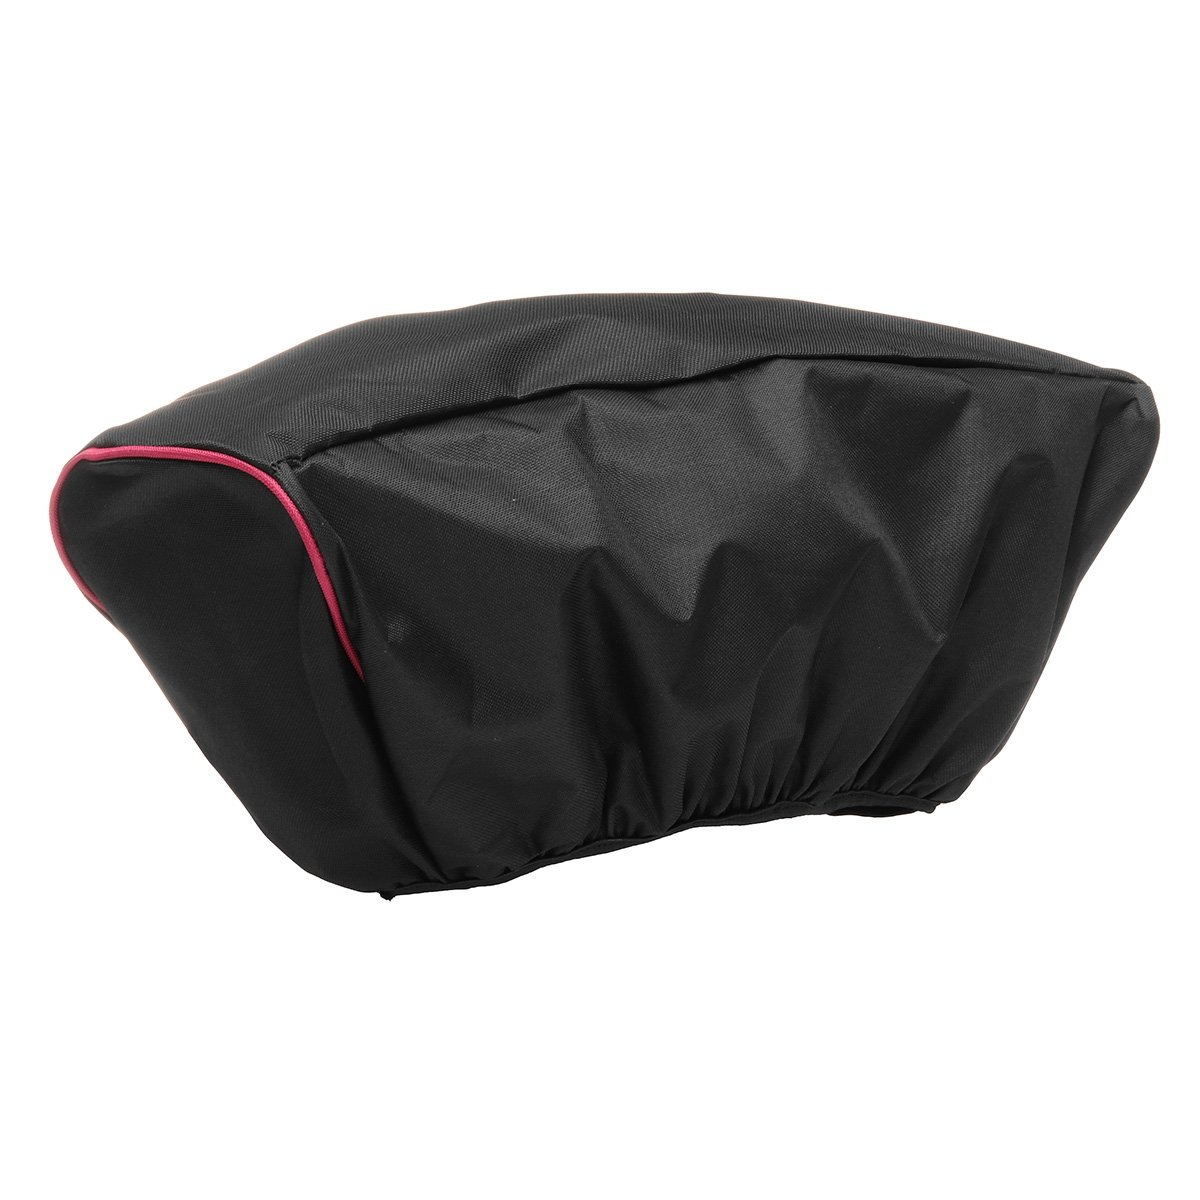 Winch Cover, Waterproof Soft Winch Dust Cover with 600D Heavy Duty Oxford Fabric Driver Recovery 8,500 to 17,500 Pound Capacit - 21.5'' W x 9.5'' H x 7.5'' D